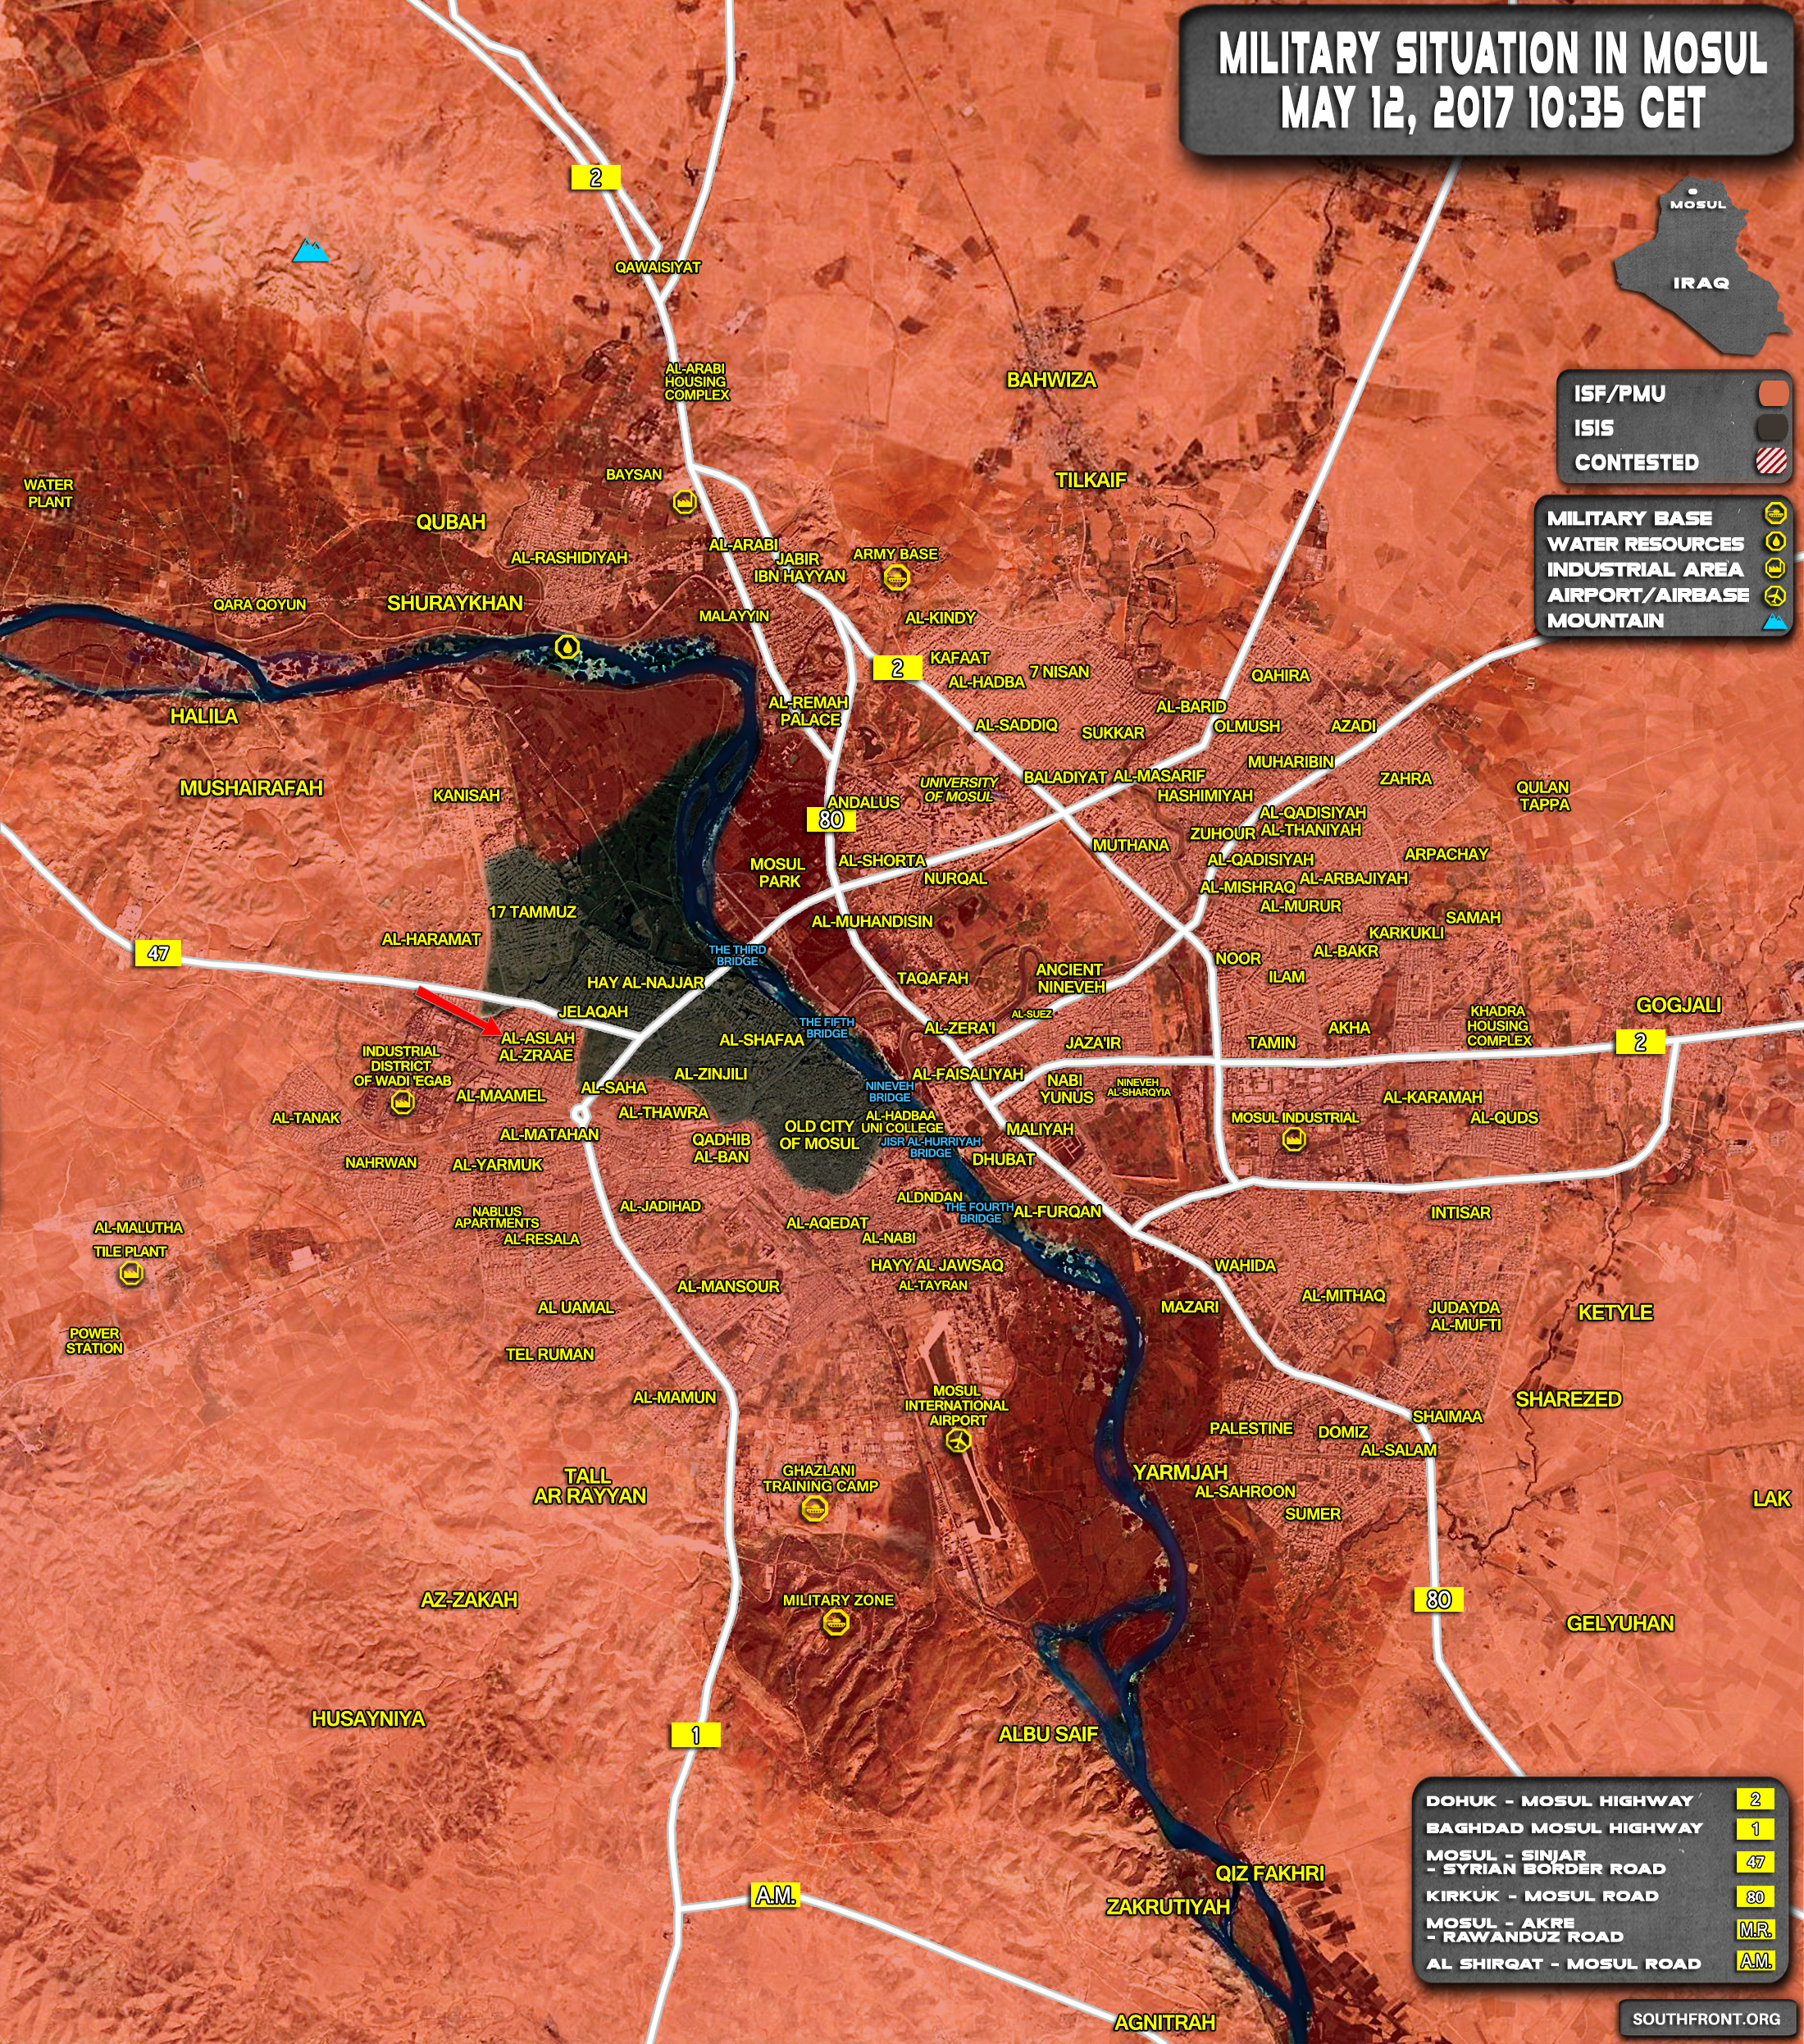 Military Situation In Iraqi City Of Mosul On May 12, 2017 (Map Update)